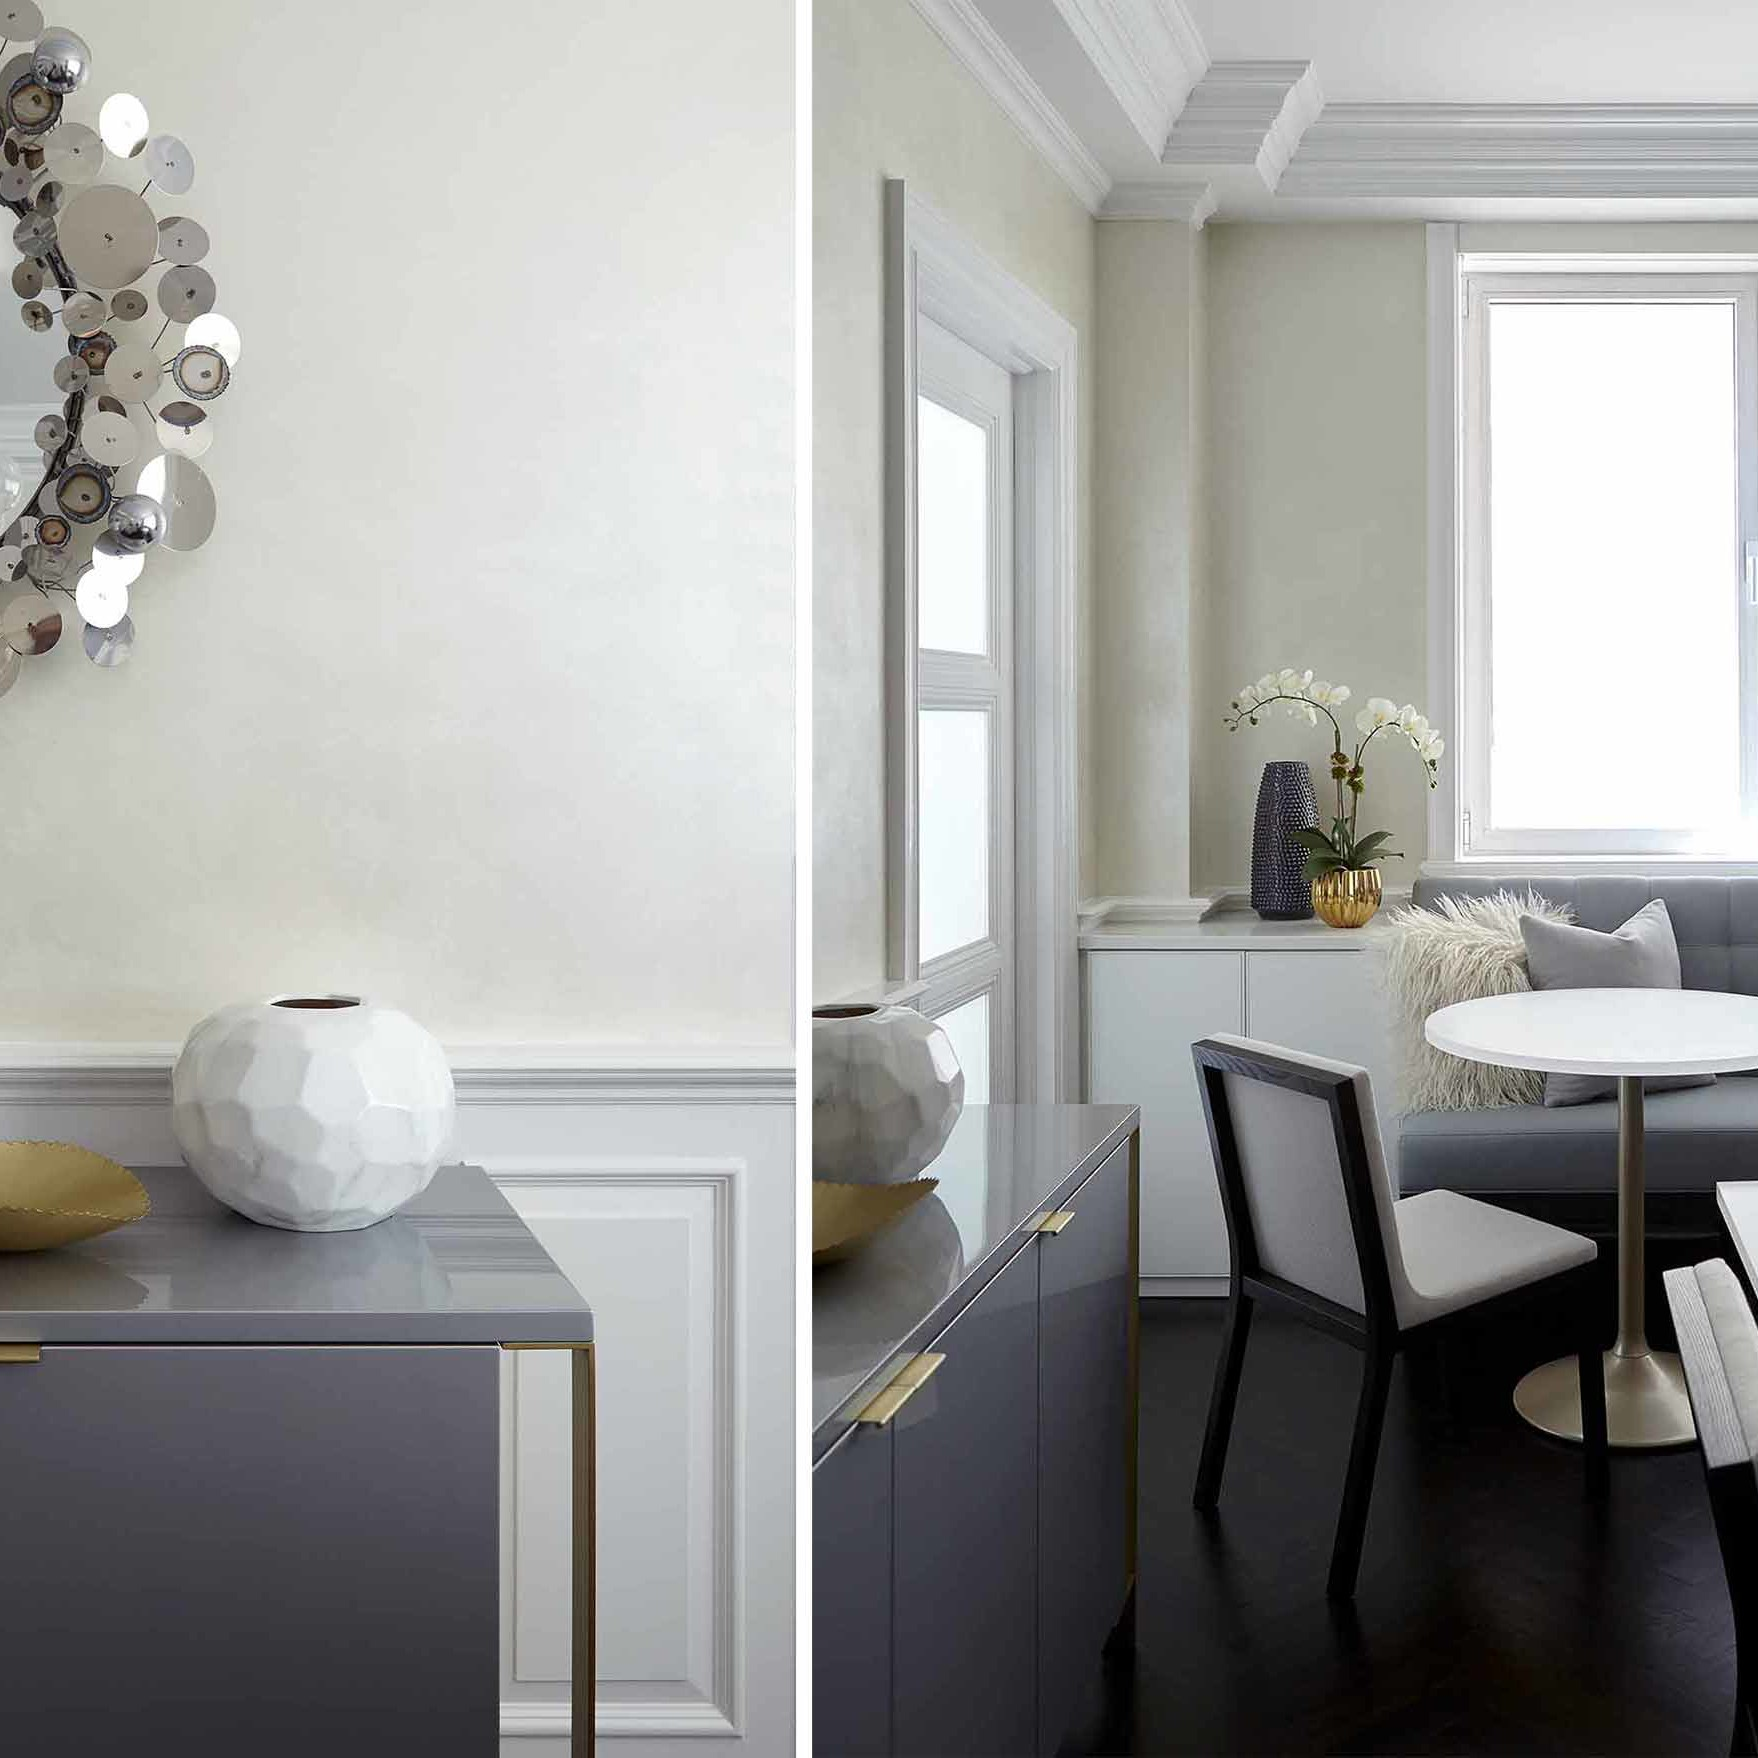 Dining room interior design by NYC's top interior design firm Darci Hether New York